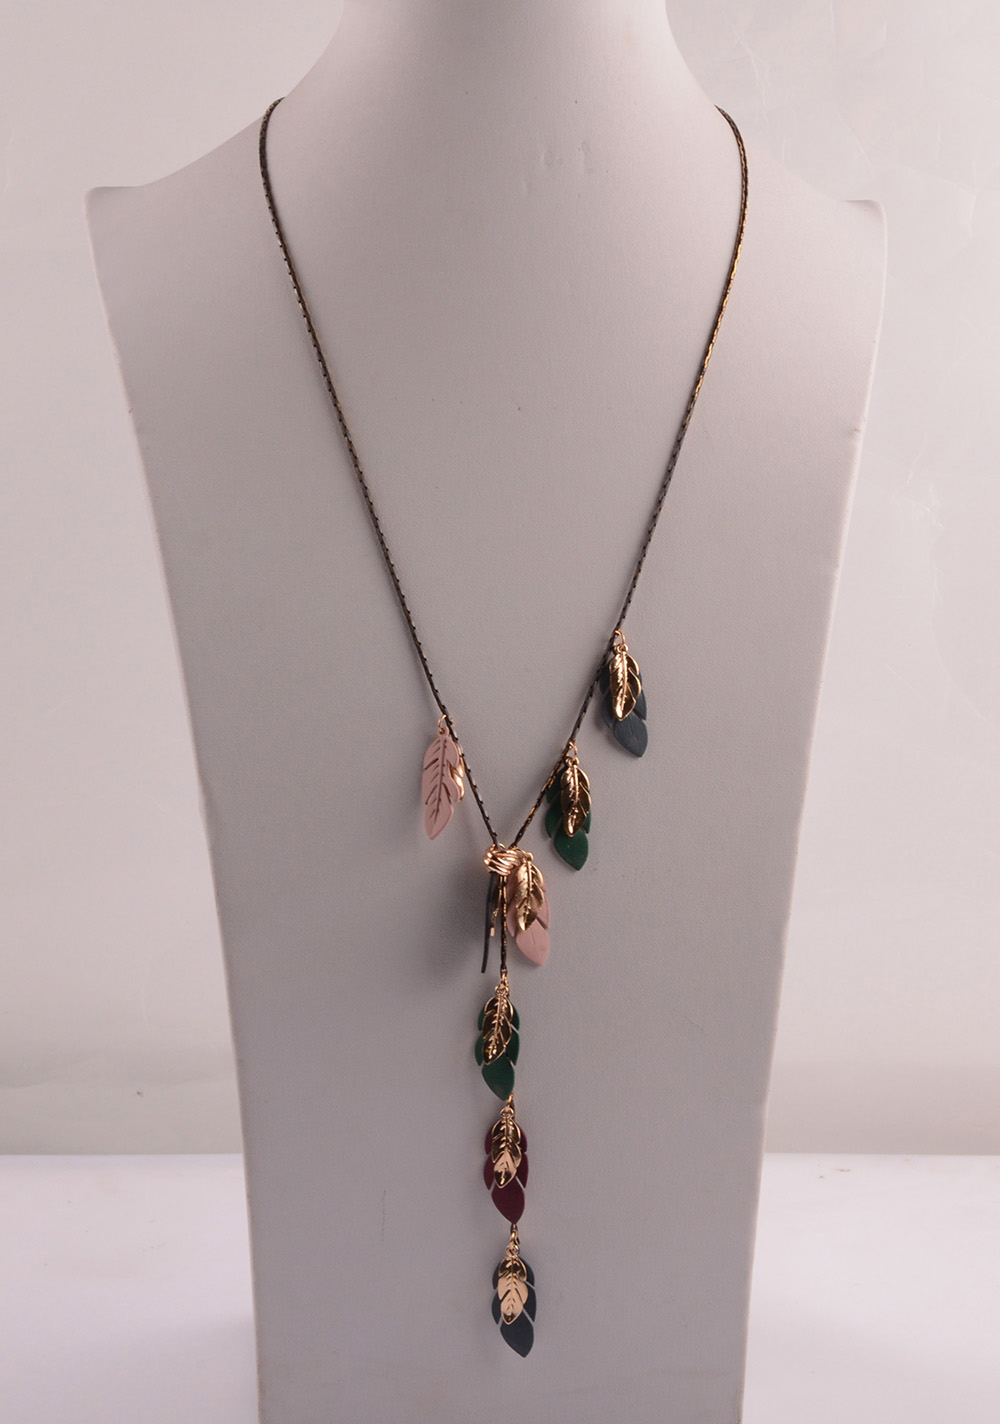 907536 Lady Long Necklace